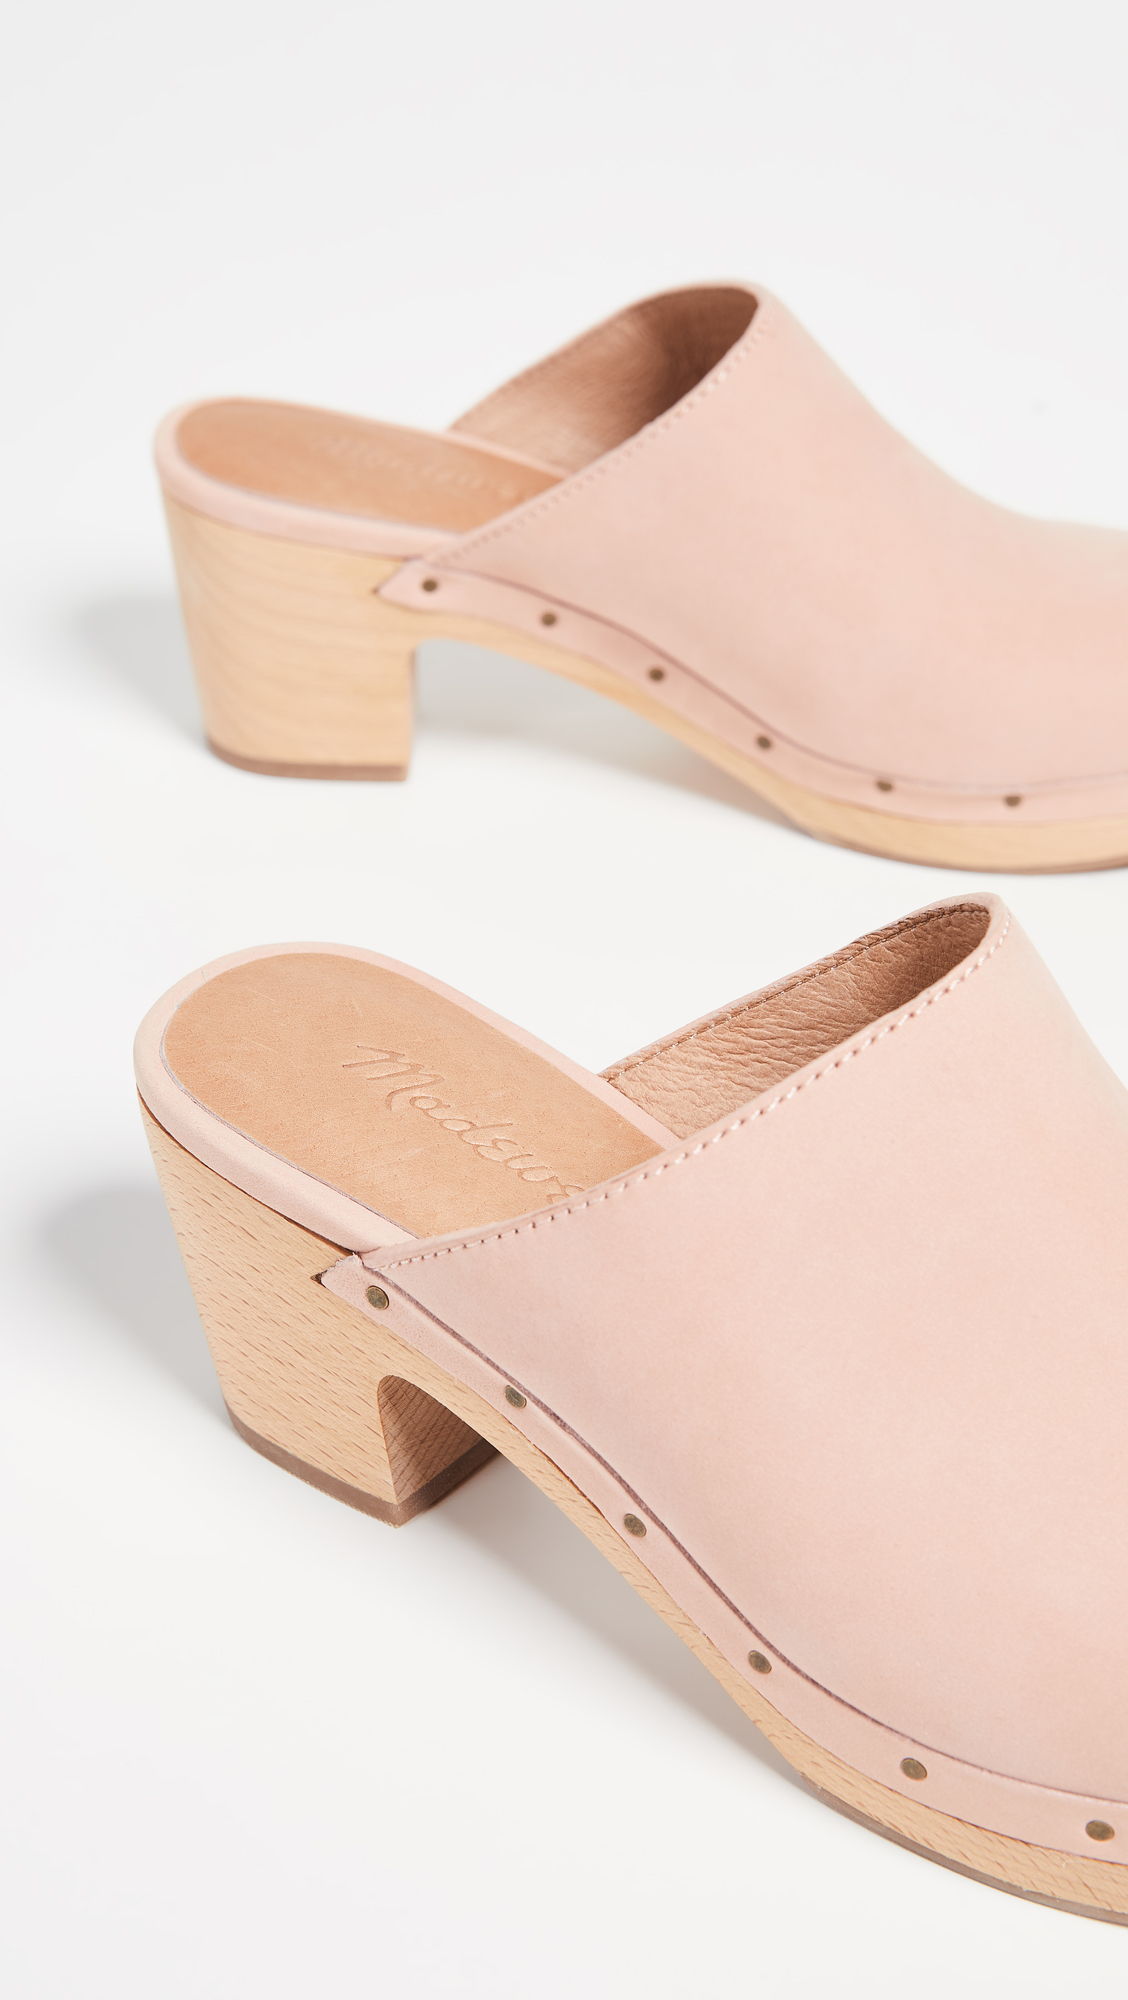 b76d5b612b1 Madewell The Ayanna Clogs